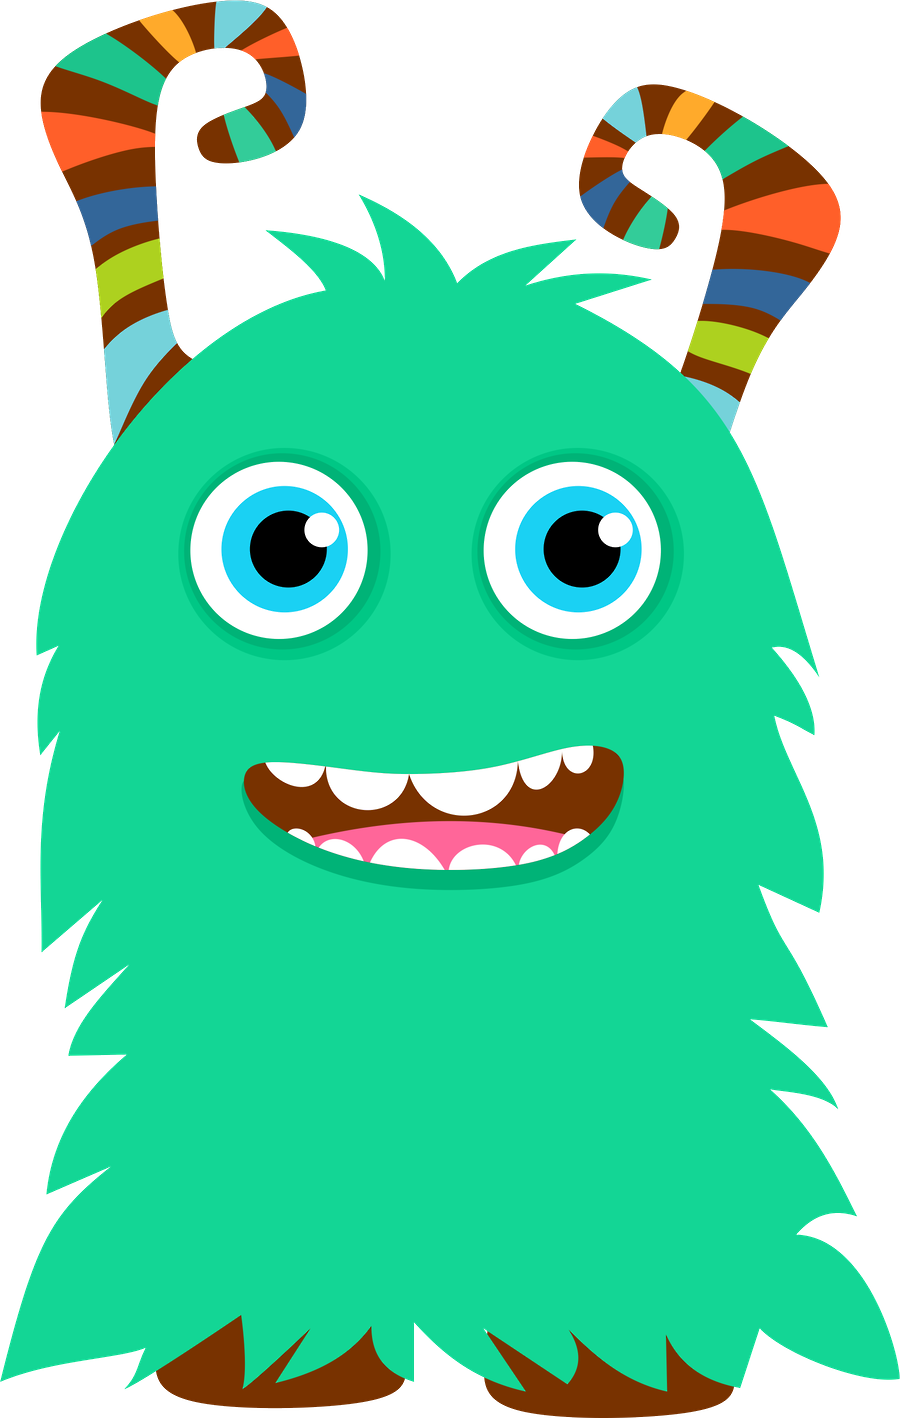 Fun monsters clipart png. Sgblogosfera mar a jos